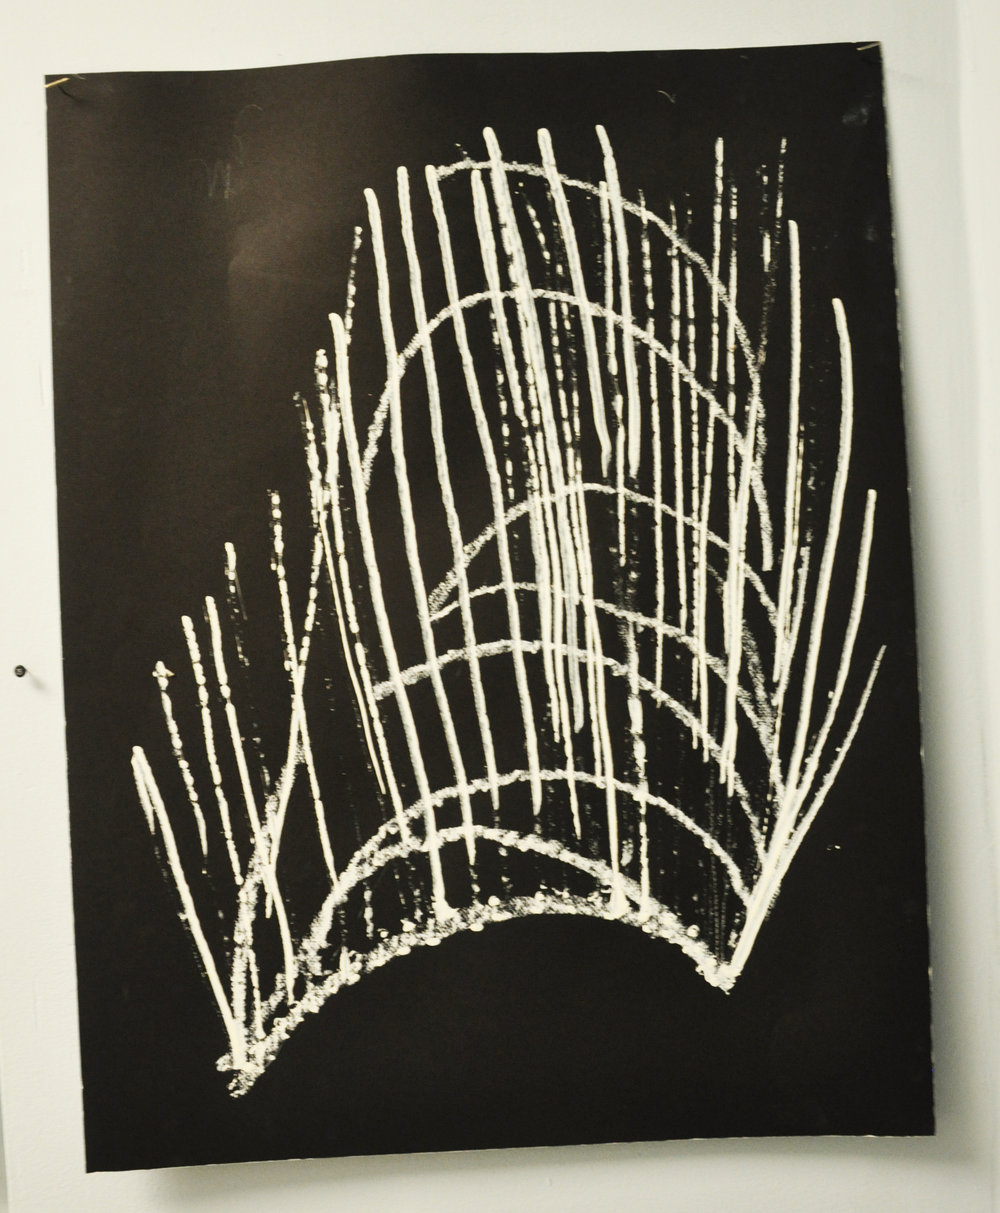 "Title: The Gate Series: Visions in the Dark Date: 2013 Dimensions: approximately 18""x 12"" Materials: R&F White Pigment Oil Stick on black Suede Wall Paint on White Paper. Drawing made after listening to a 21 minute recording from a hypnosis session. Drawing made in a hypnotic state."